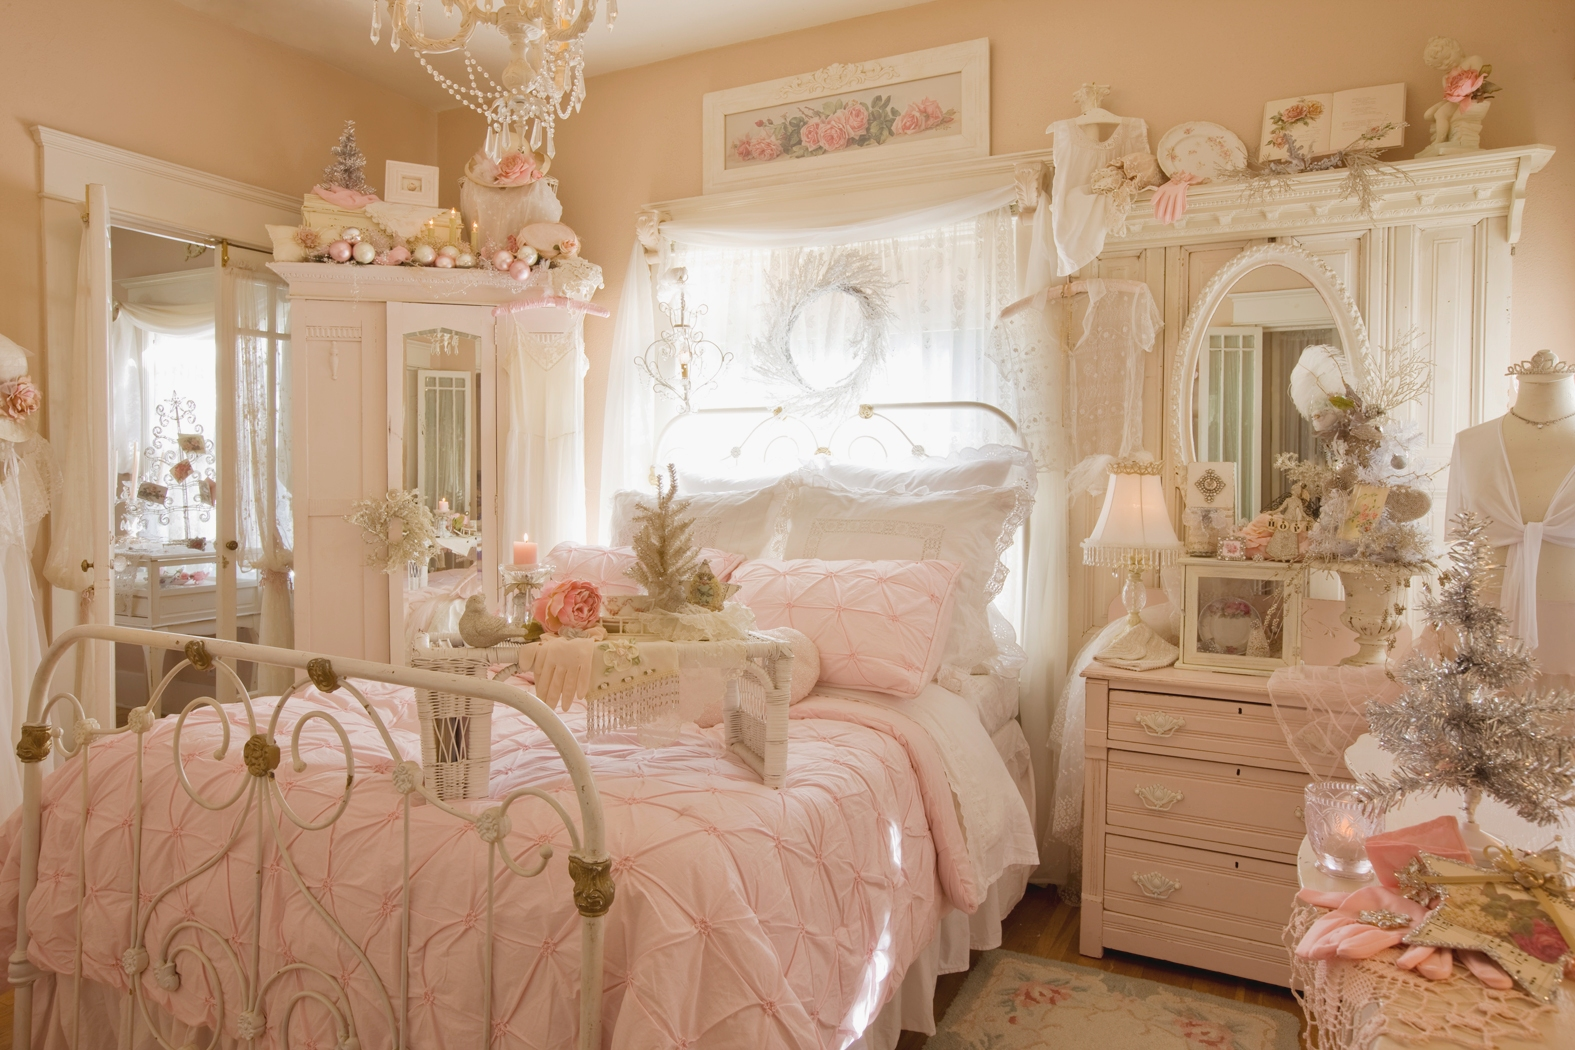 ... Romantic Bedroom Ideas further India Girls Bedroom Ideas as well Hello